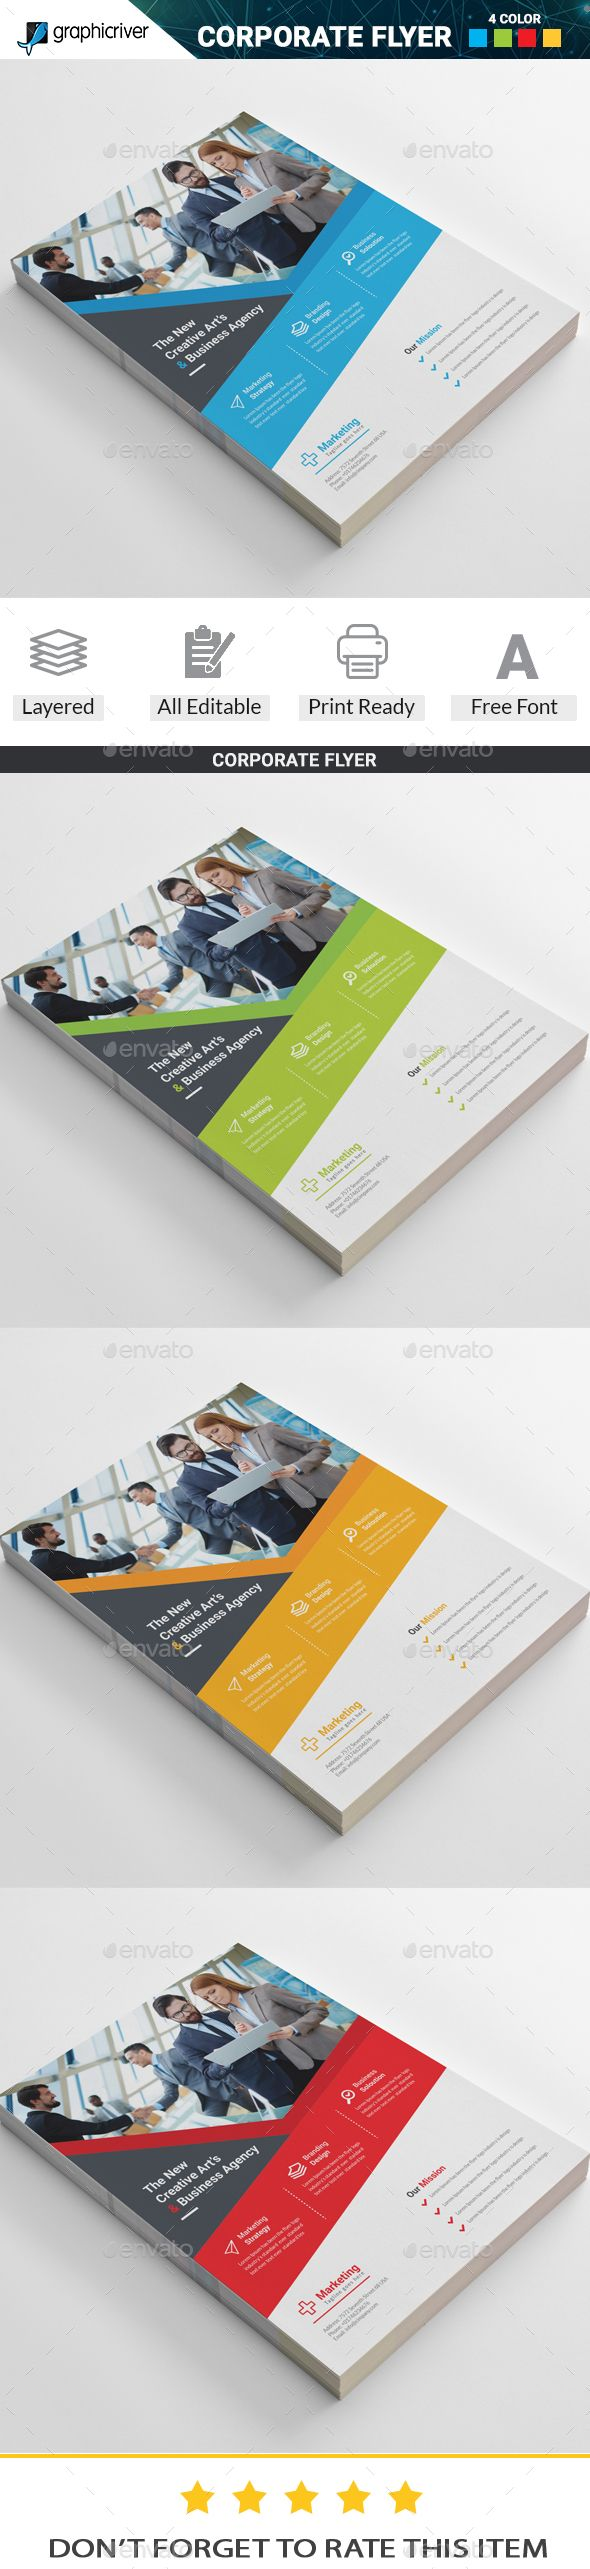 Corporate  Flyer Template Vector EPS, AI Illustrator